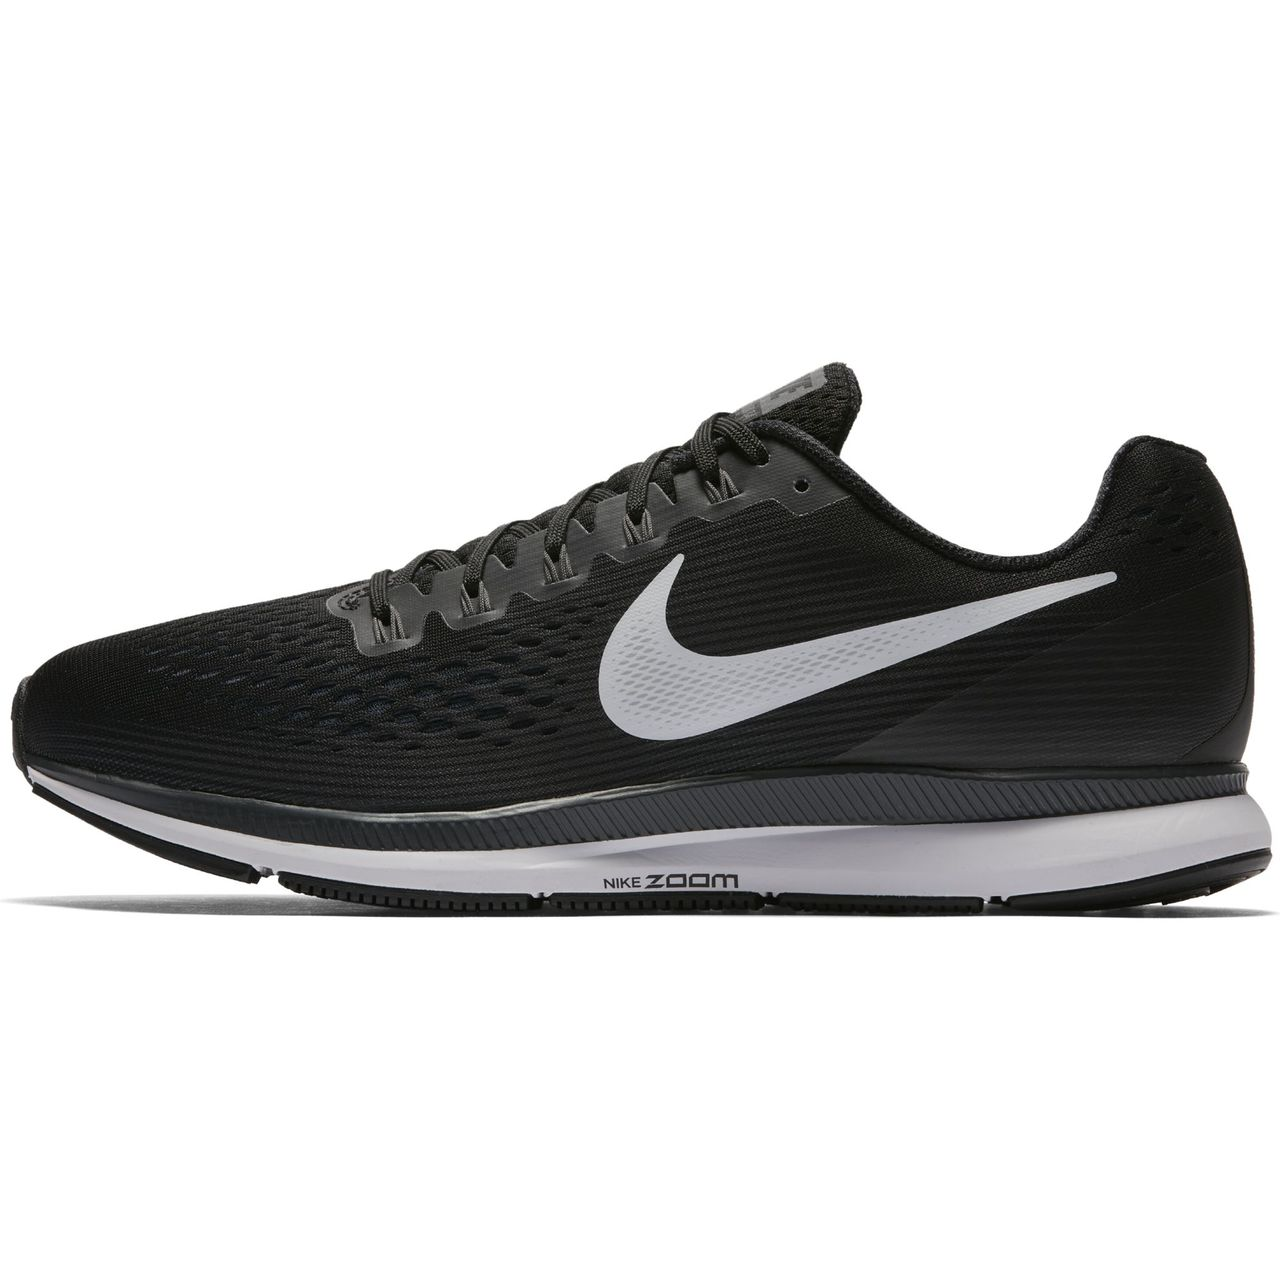 reputable site 4f57c 667e7 Nike Men's Air Zoom Pegasus 34 - Black/White